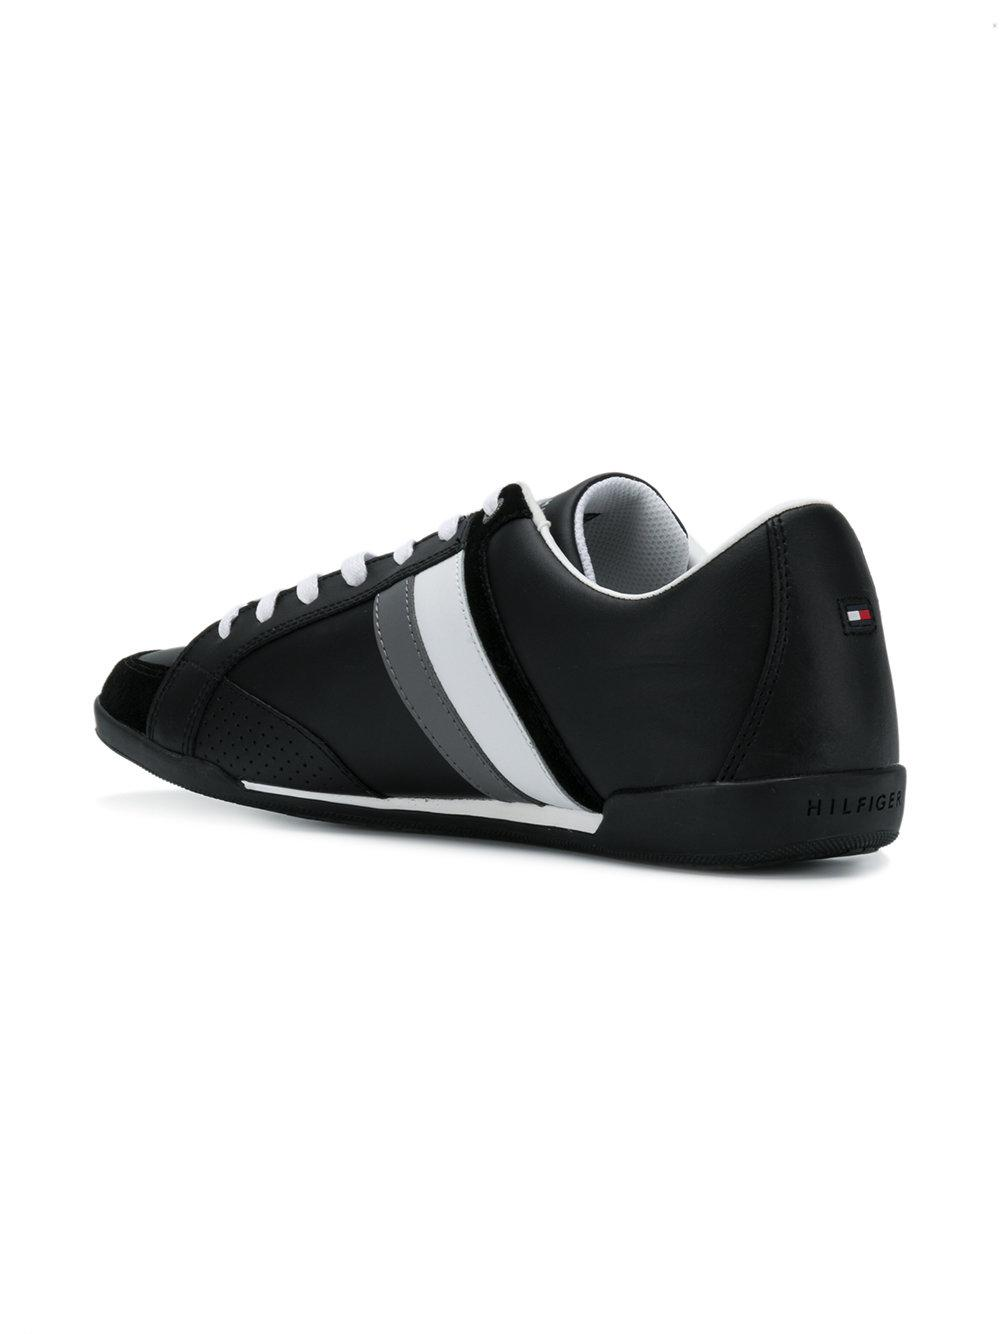 detailed look d4d5c 0a1b5 tommy-hilfiger-Black-Side-Striped-Lace-up-Sneakers.jpeg